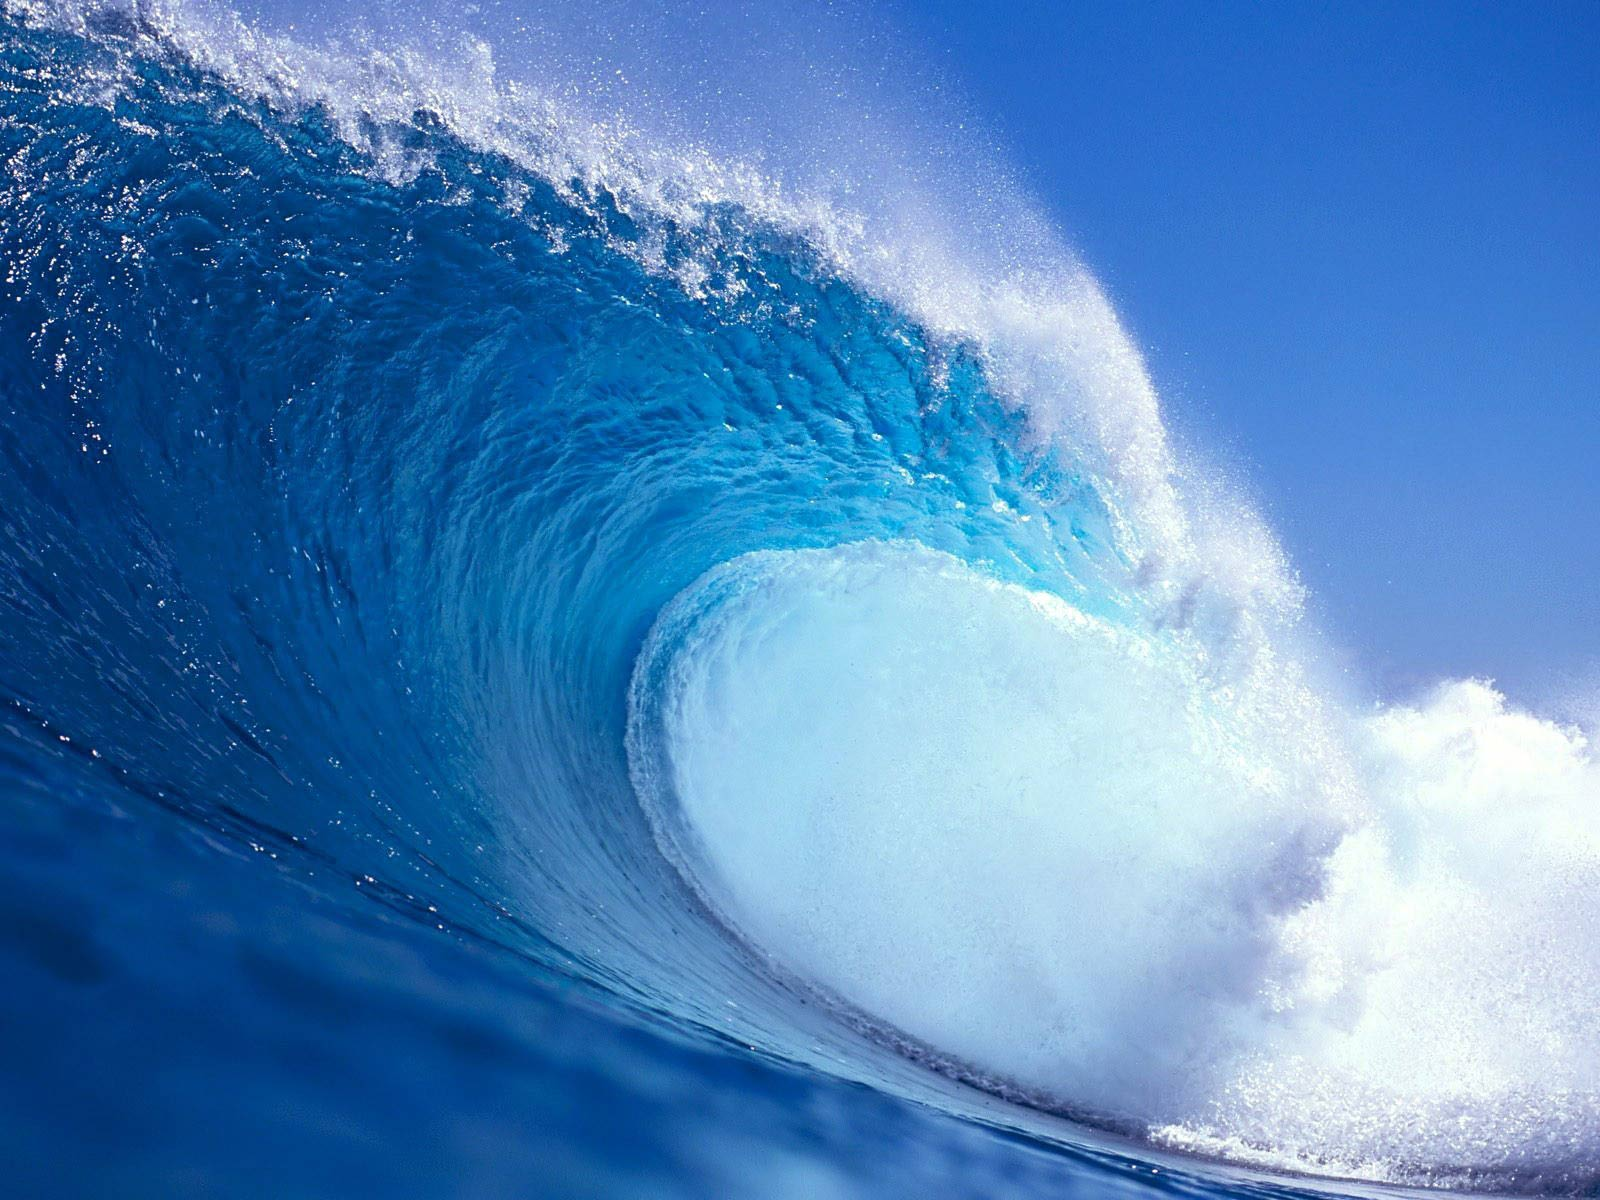 Waves Wallpaper